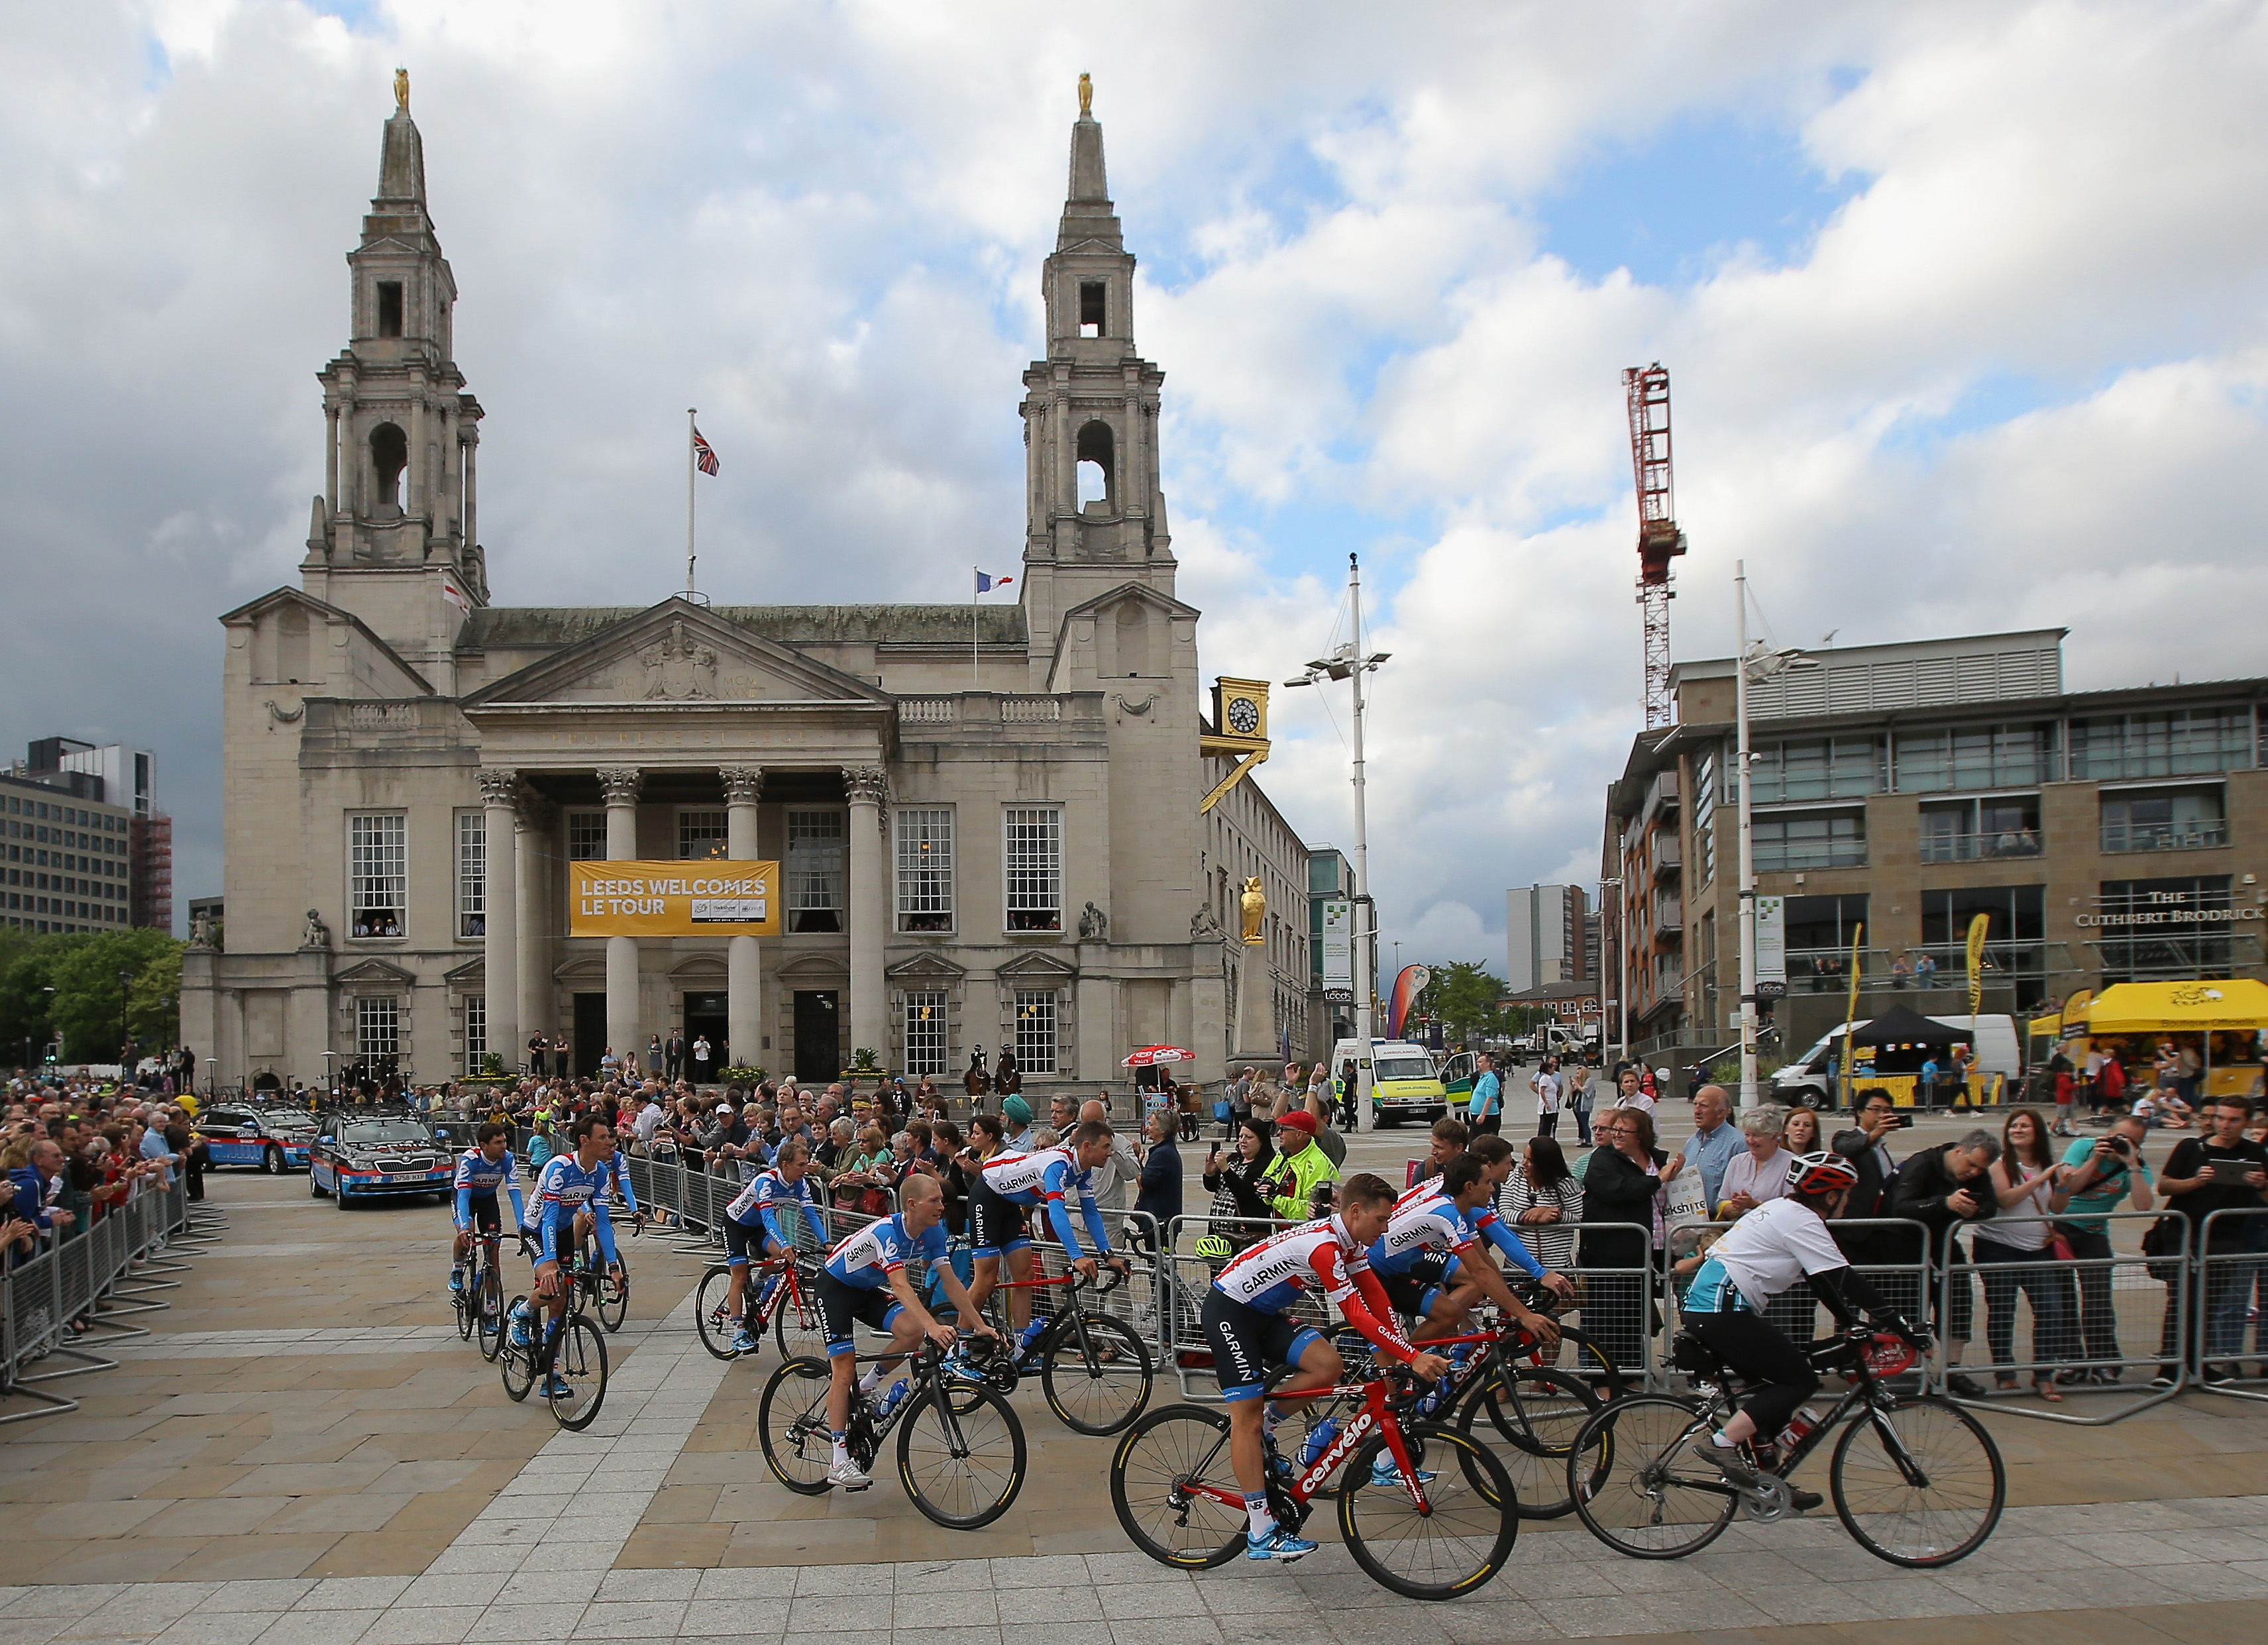 Team Garmin-Sharp is greeted by supporters as they ride through Millenium Square enroute to the Team Presentation prior to the 2014 Le Tour de France on July 3, 2014 in Leeds, United Kingdom.